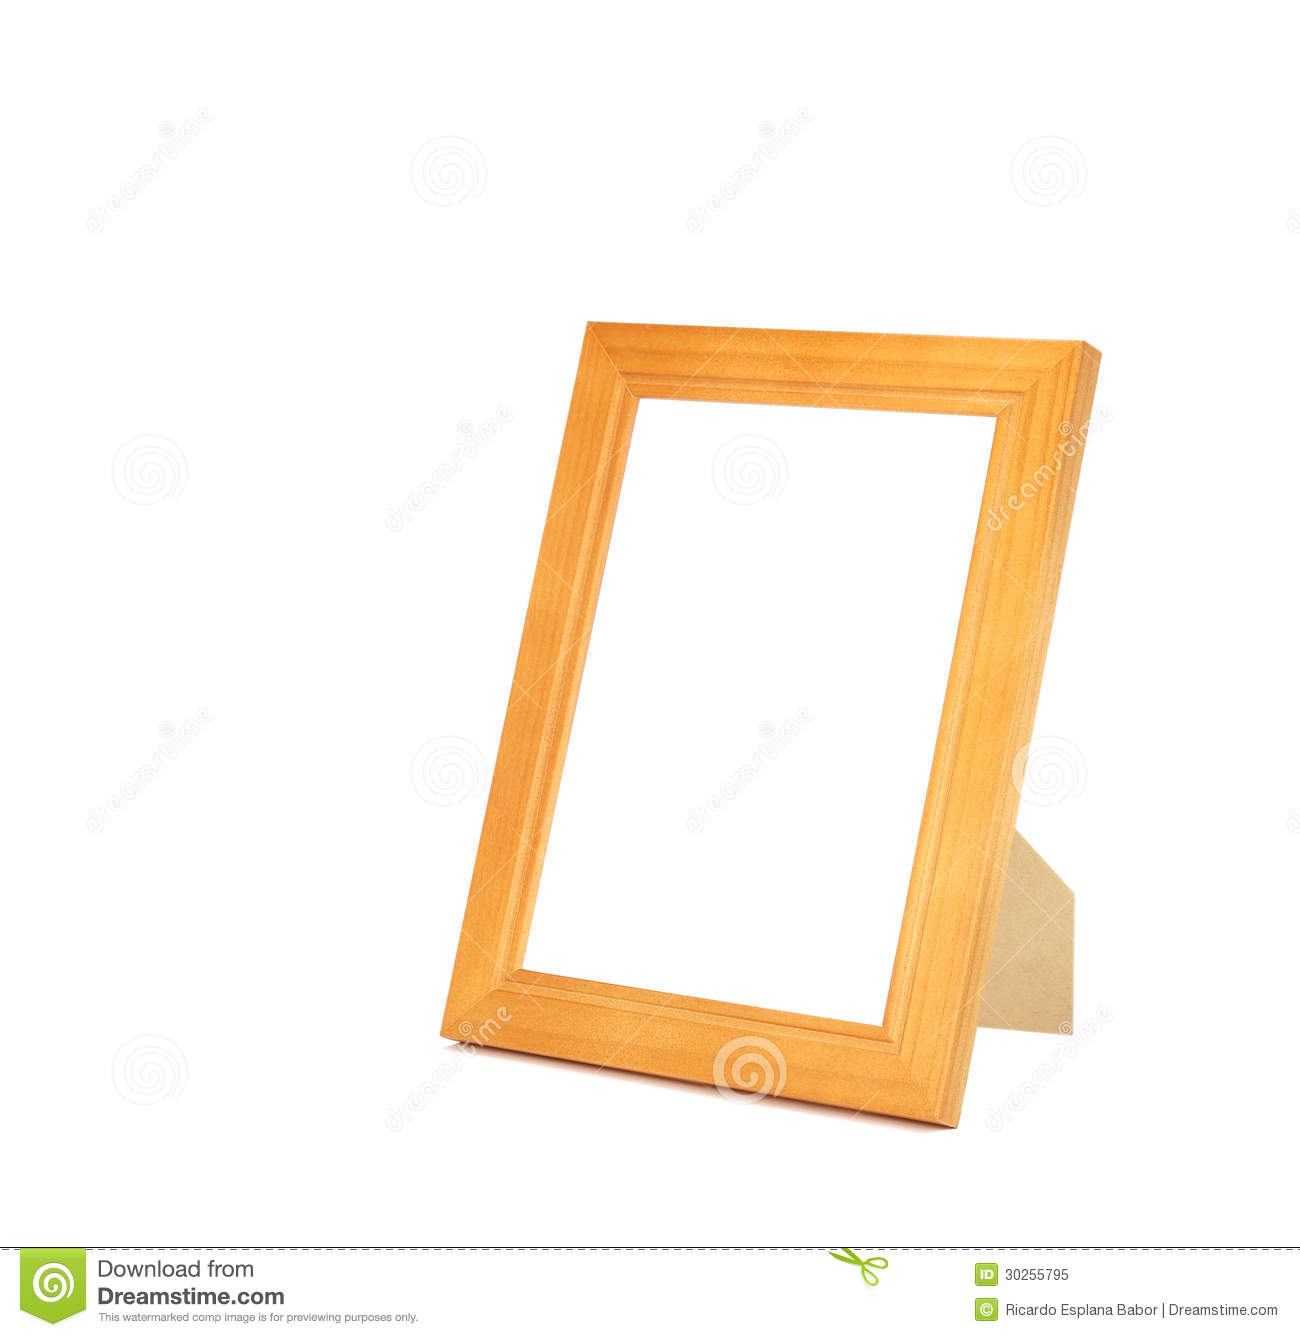 Very Impressive portraiture of Picture Frame Royalty Free Stock Photo Image: 30255795 with #C57606 color and 1300x1337 pixels